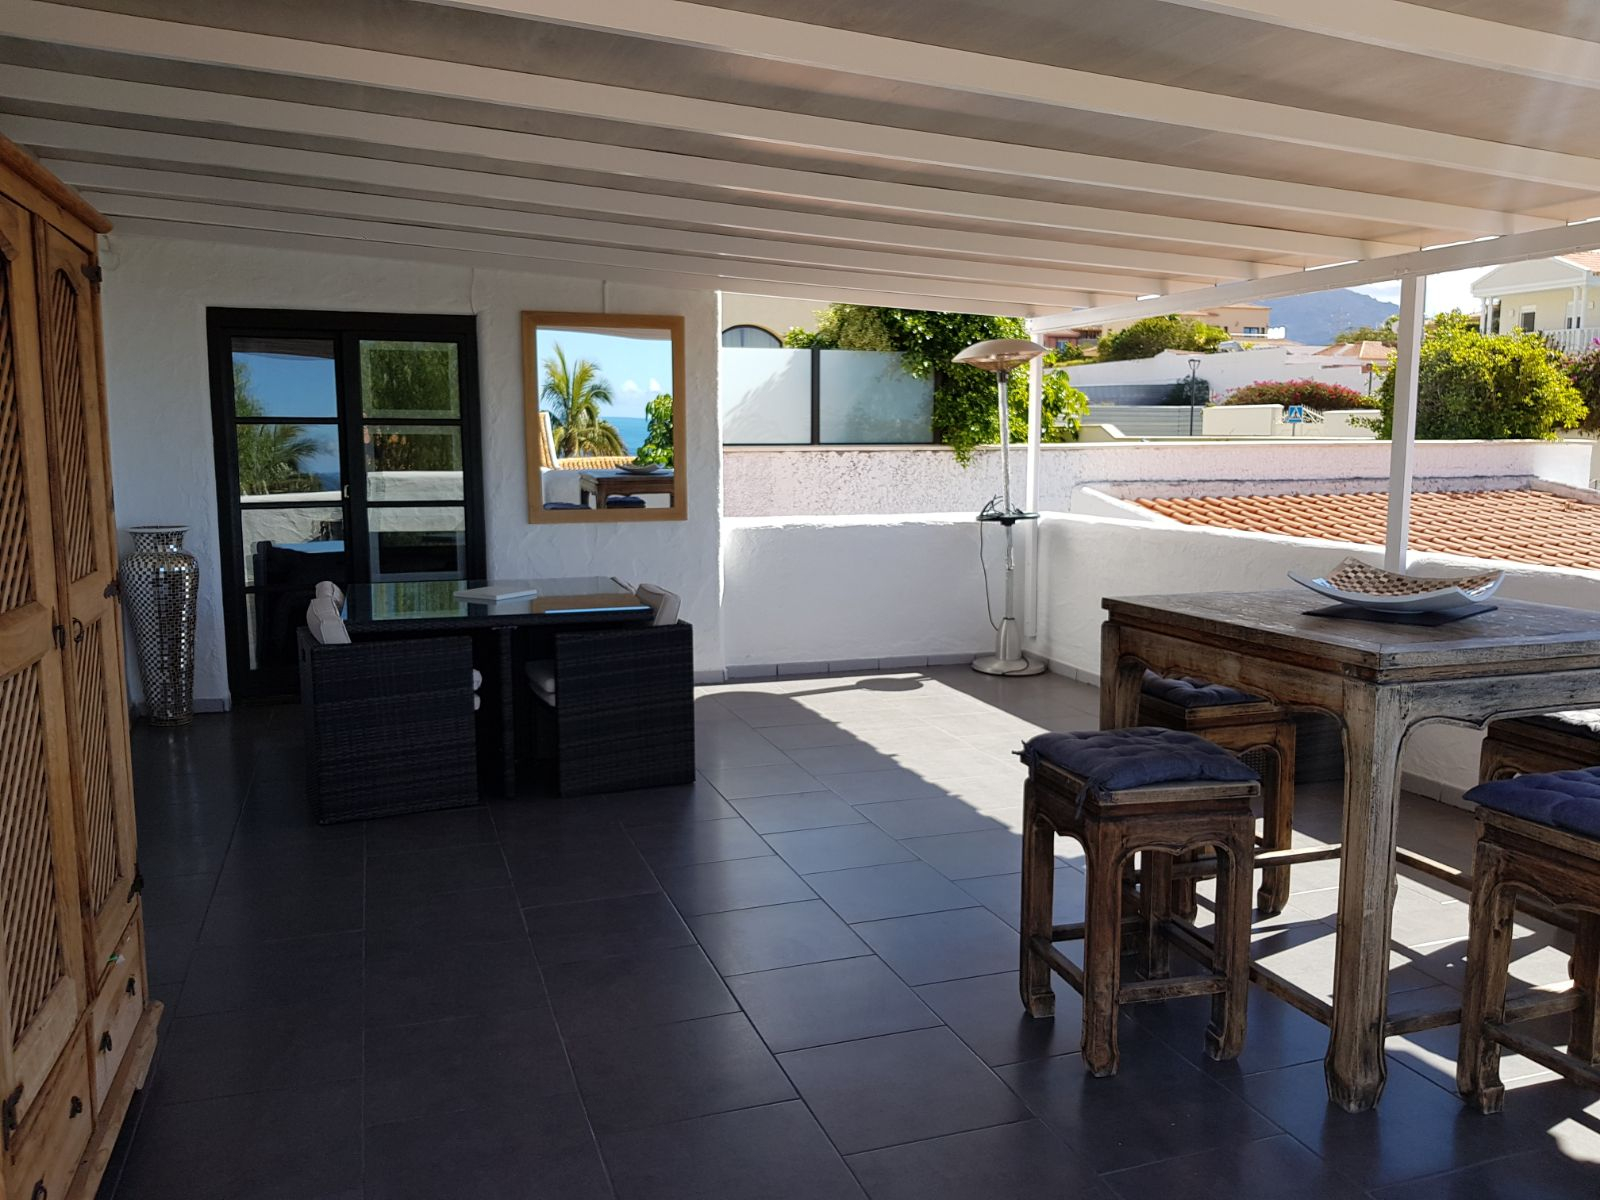 Properties for Sale in Tenerife, Canary Islands, Spain | SylkWayStar Real Estate. Villa 5 bedrooms Playa Paraiso. Image-25633